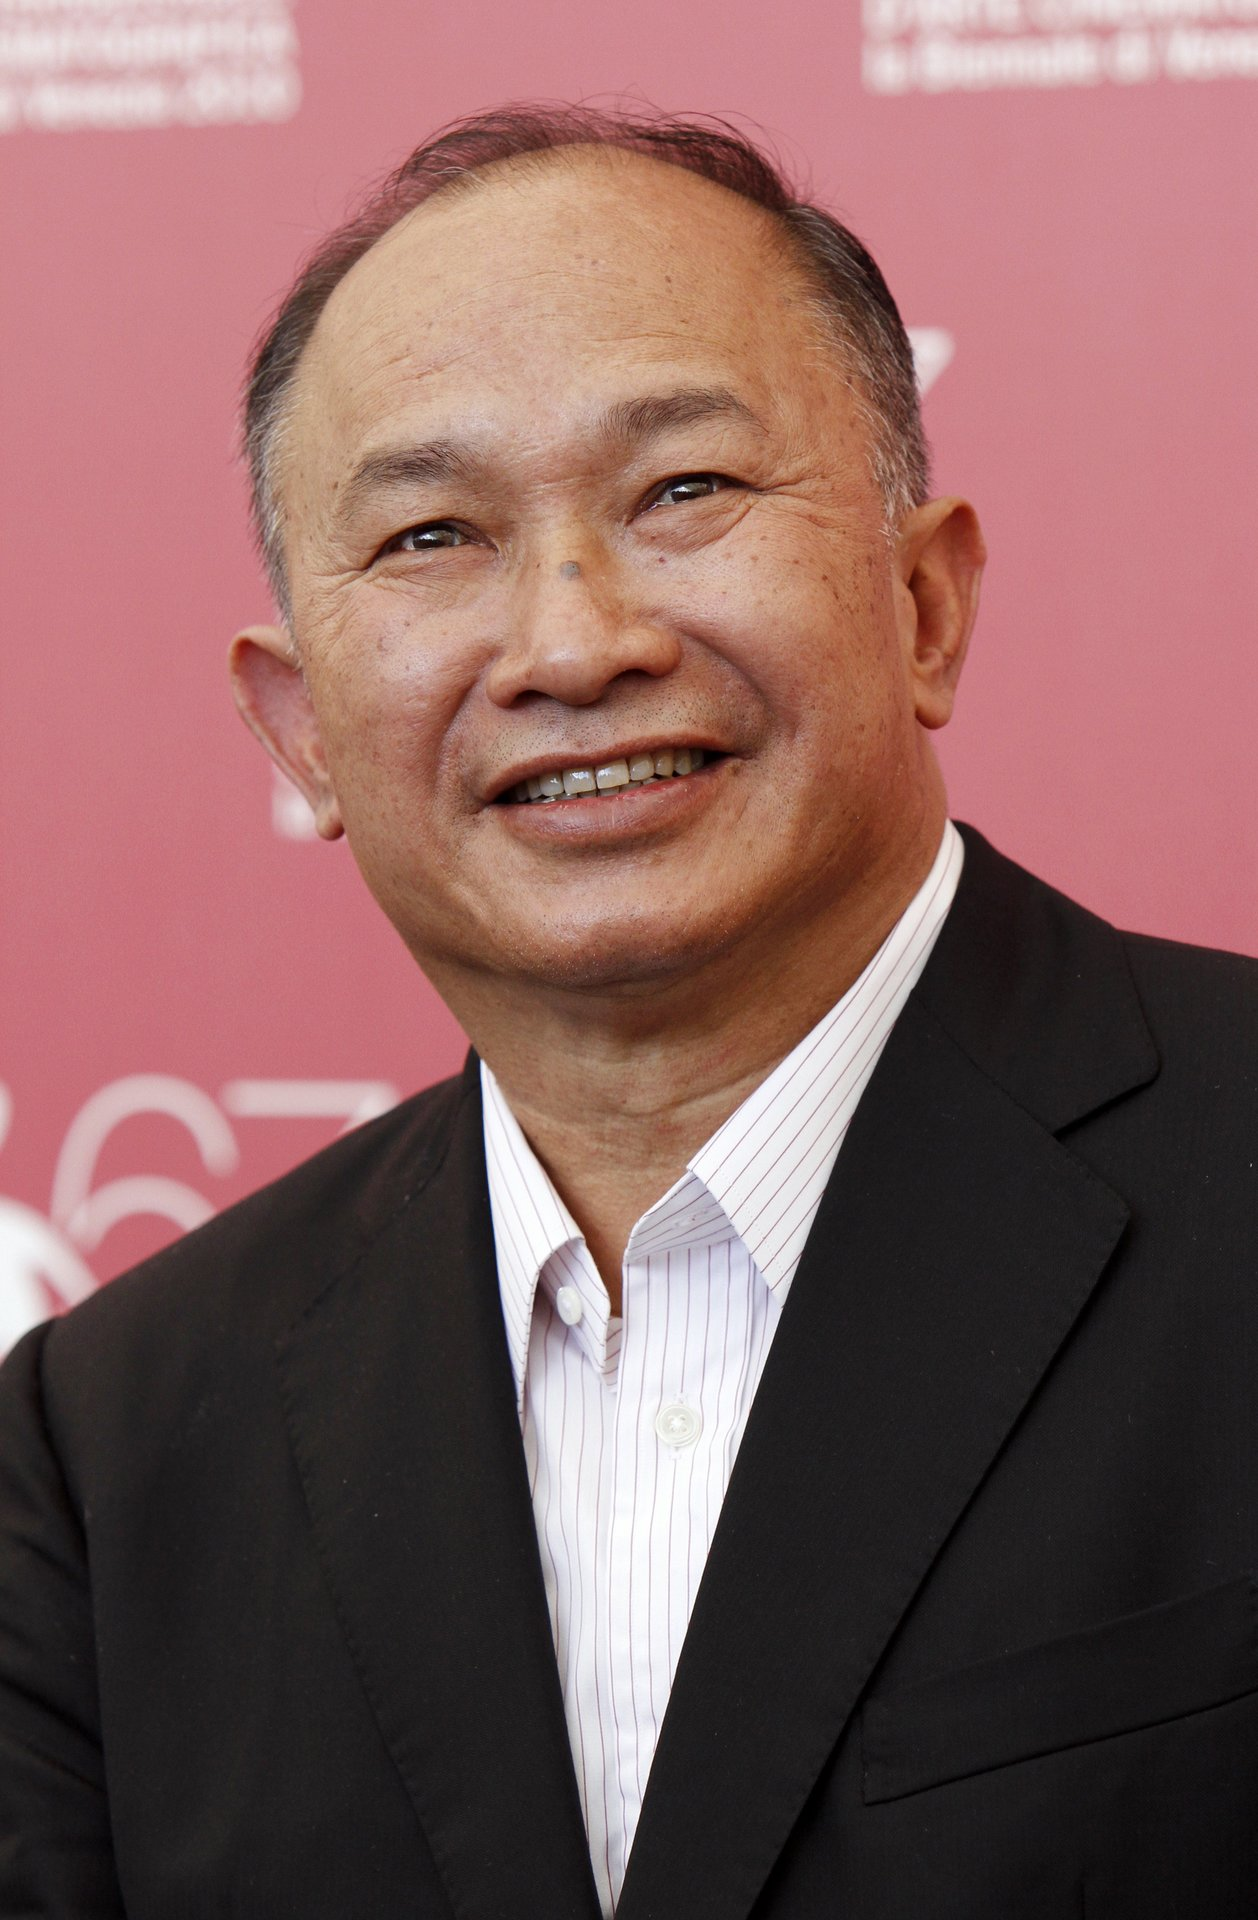 john woo John woo sbs (chinese: 吳宇森 born may 1, 1946) is a chinese-born hong kong film director, writer, and producer he is the owner of lion rock productions [3] he is considered a major influence on the action genre , known for his highly chaotic action sequences, mexican standoffs , and frequent use of slow motion.